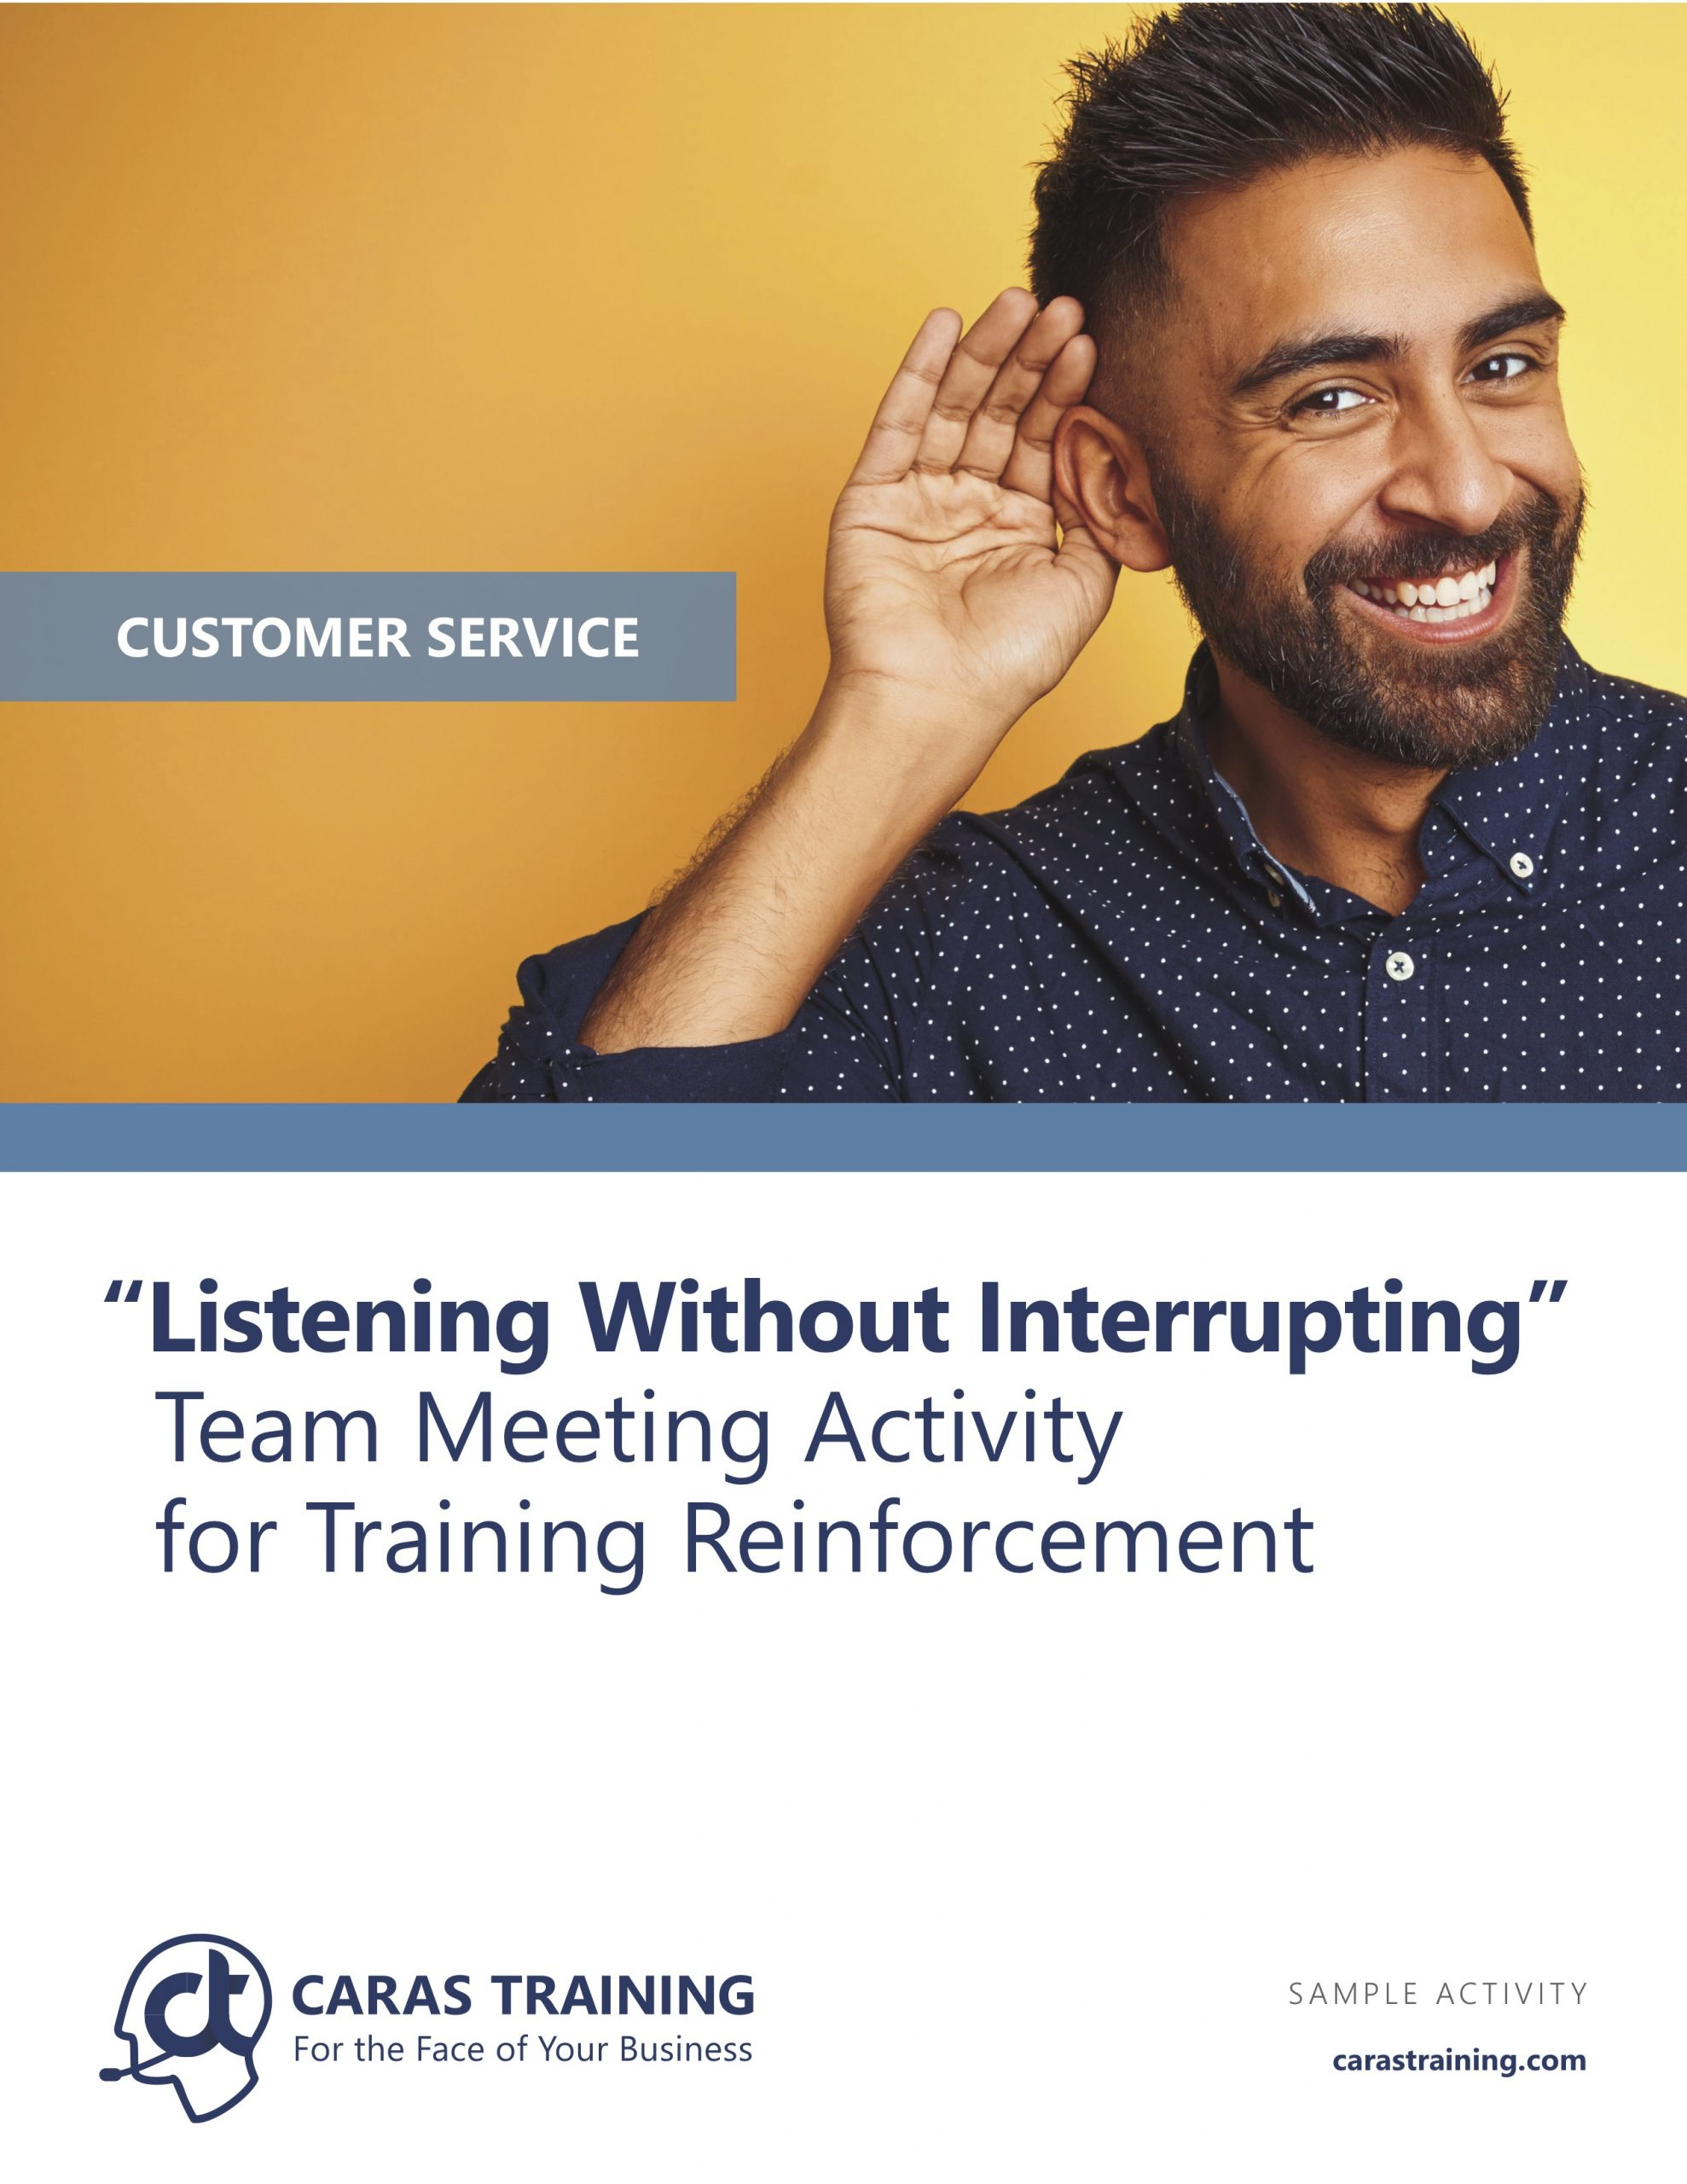 Listening without interrupting training